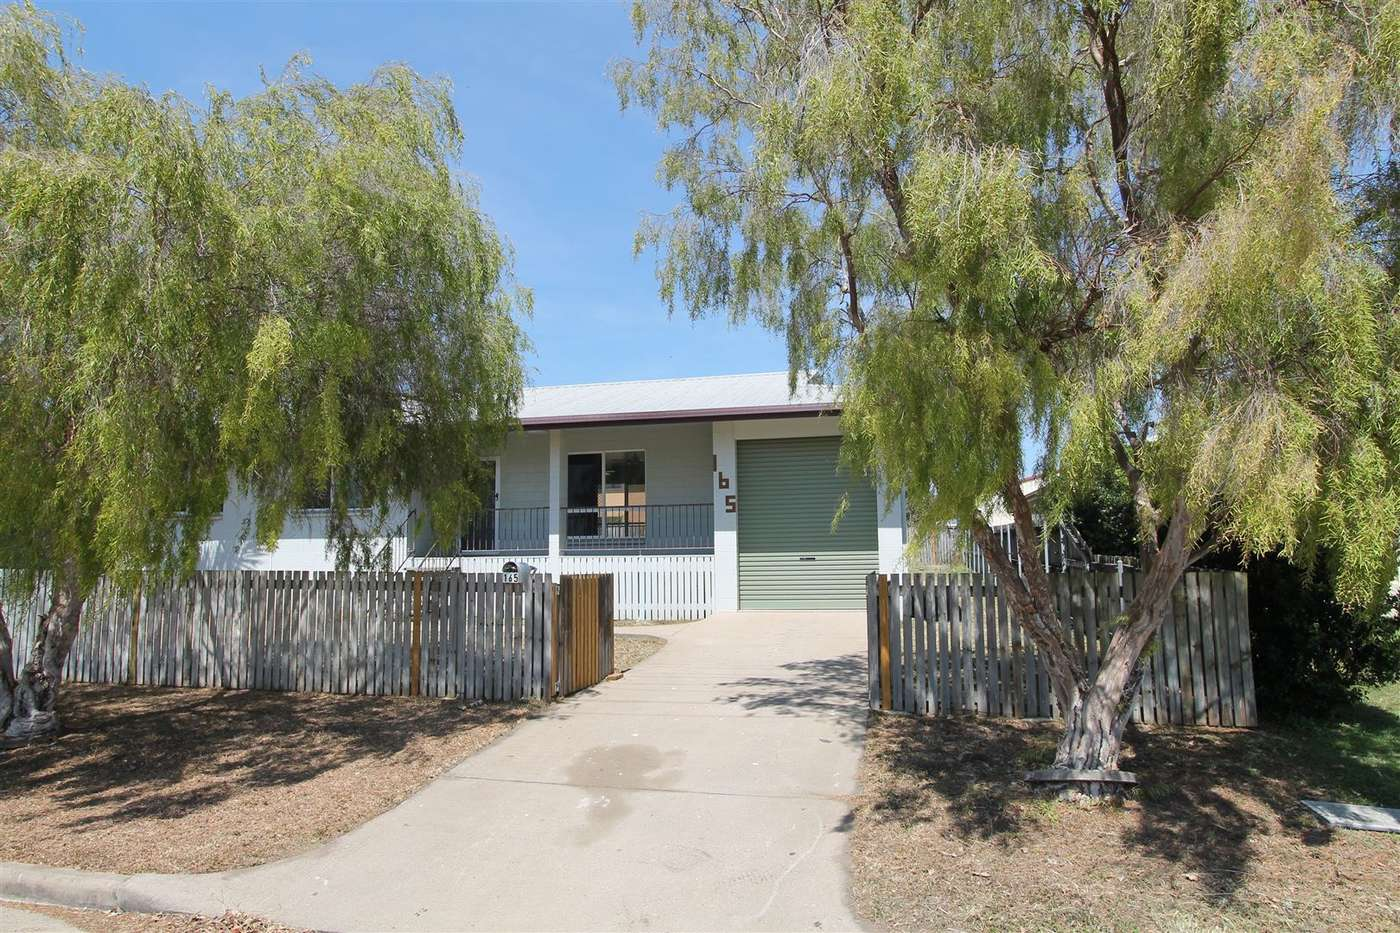 Main view of Homely house listing, 165 Chippendale Street, Ayr, QLD 4807